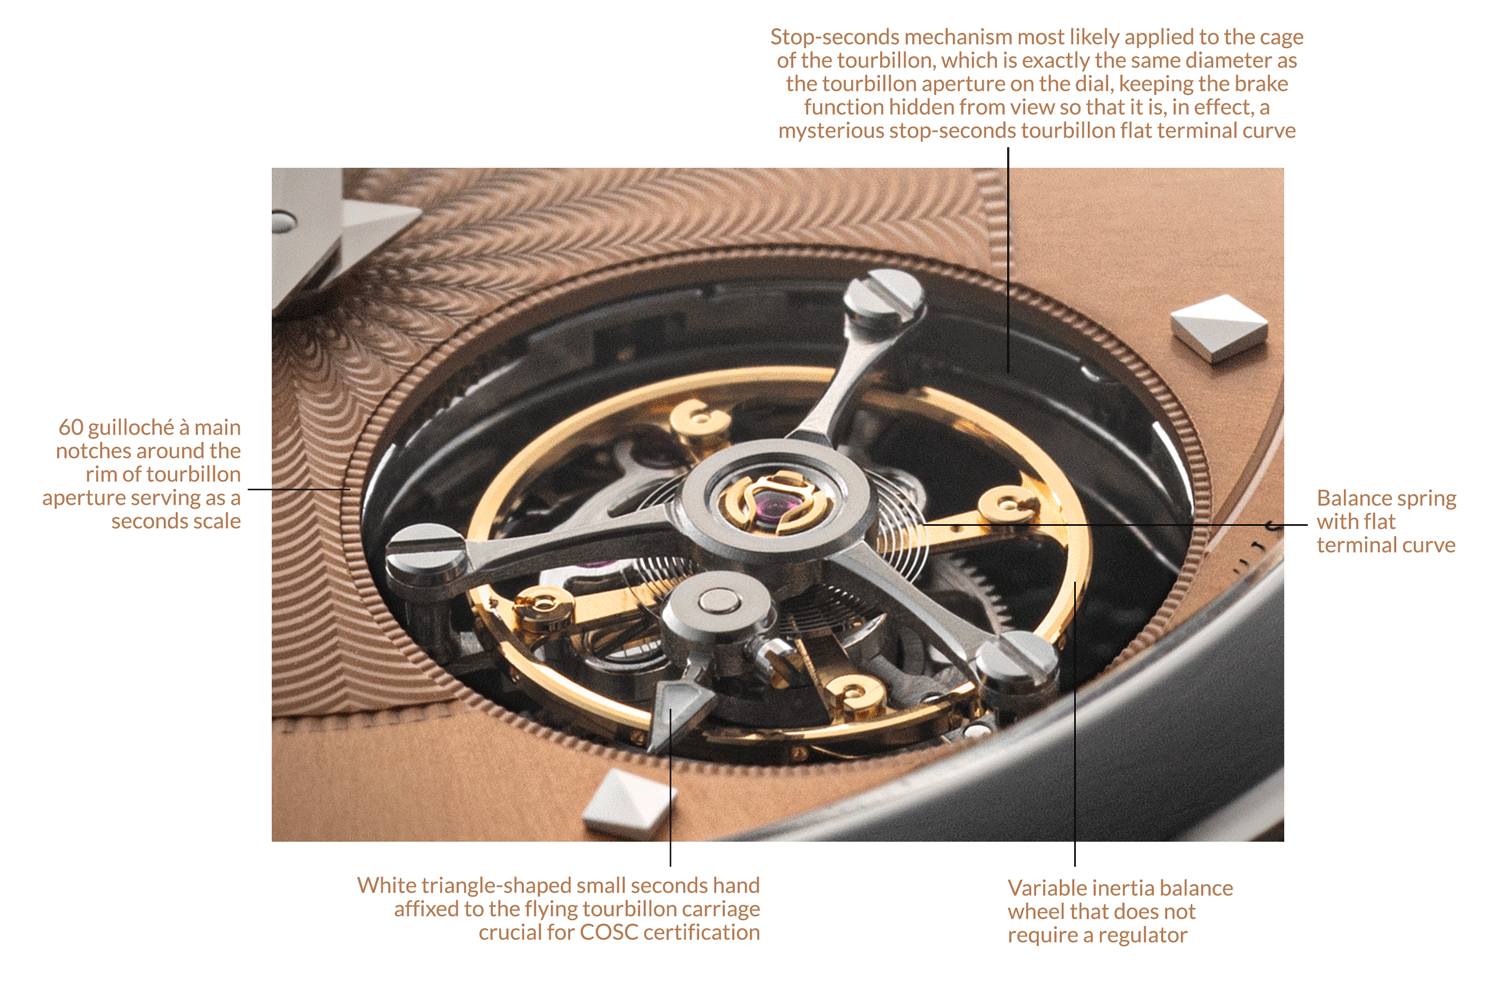 White triangle-shaped small seconds hand affixed to the flying tourbillon carriage crucial for COSC certification; notice also the 60 notches around the rim of tourbillon aperture serving as a seconds scale (©Revolution)